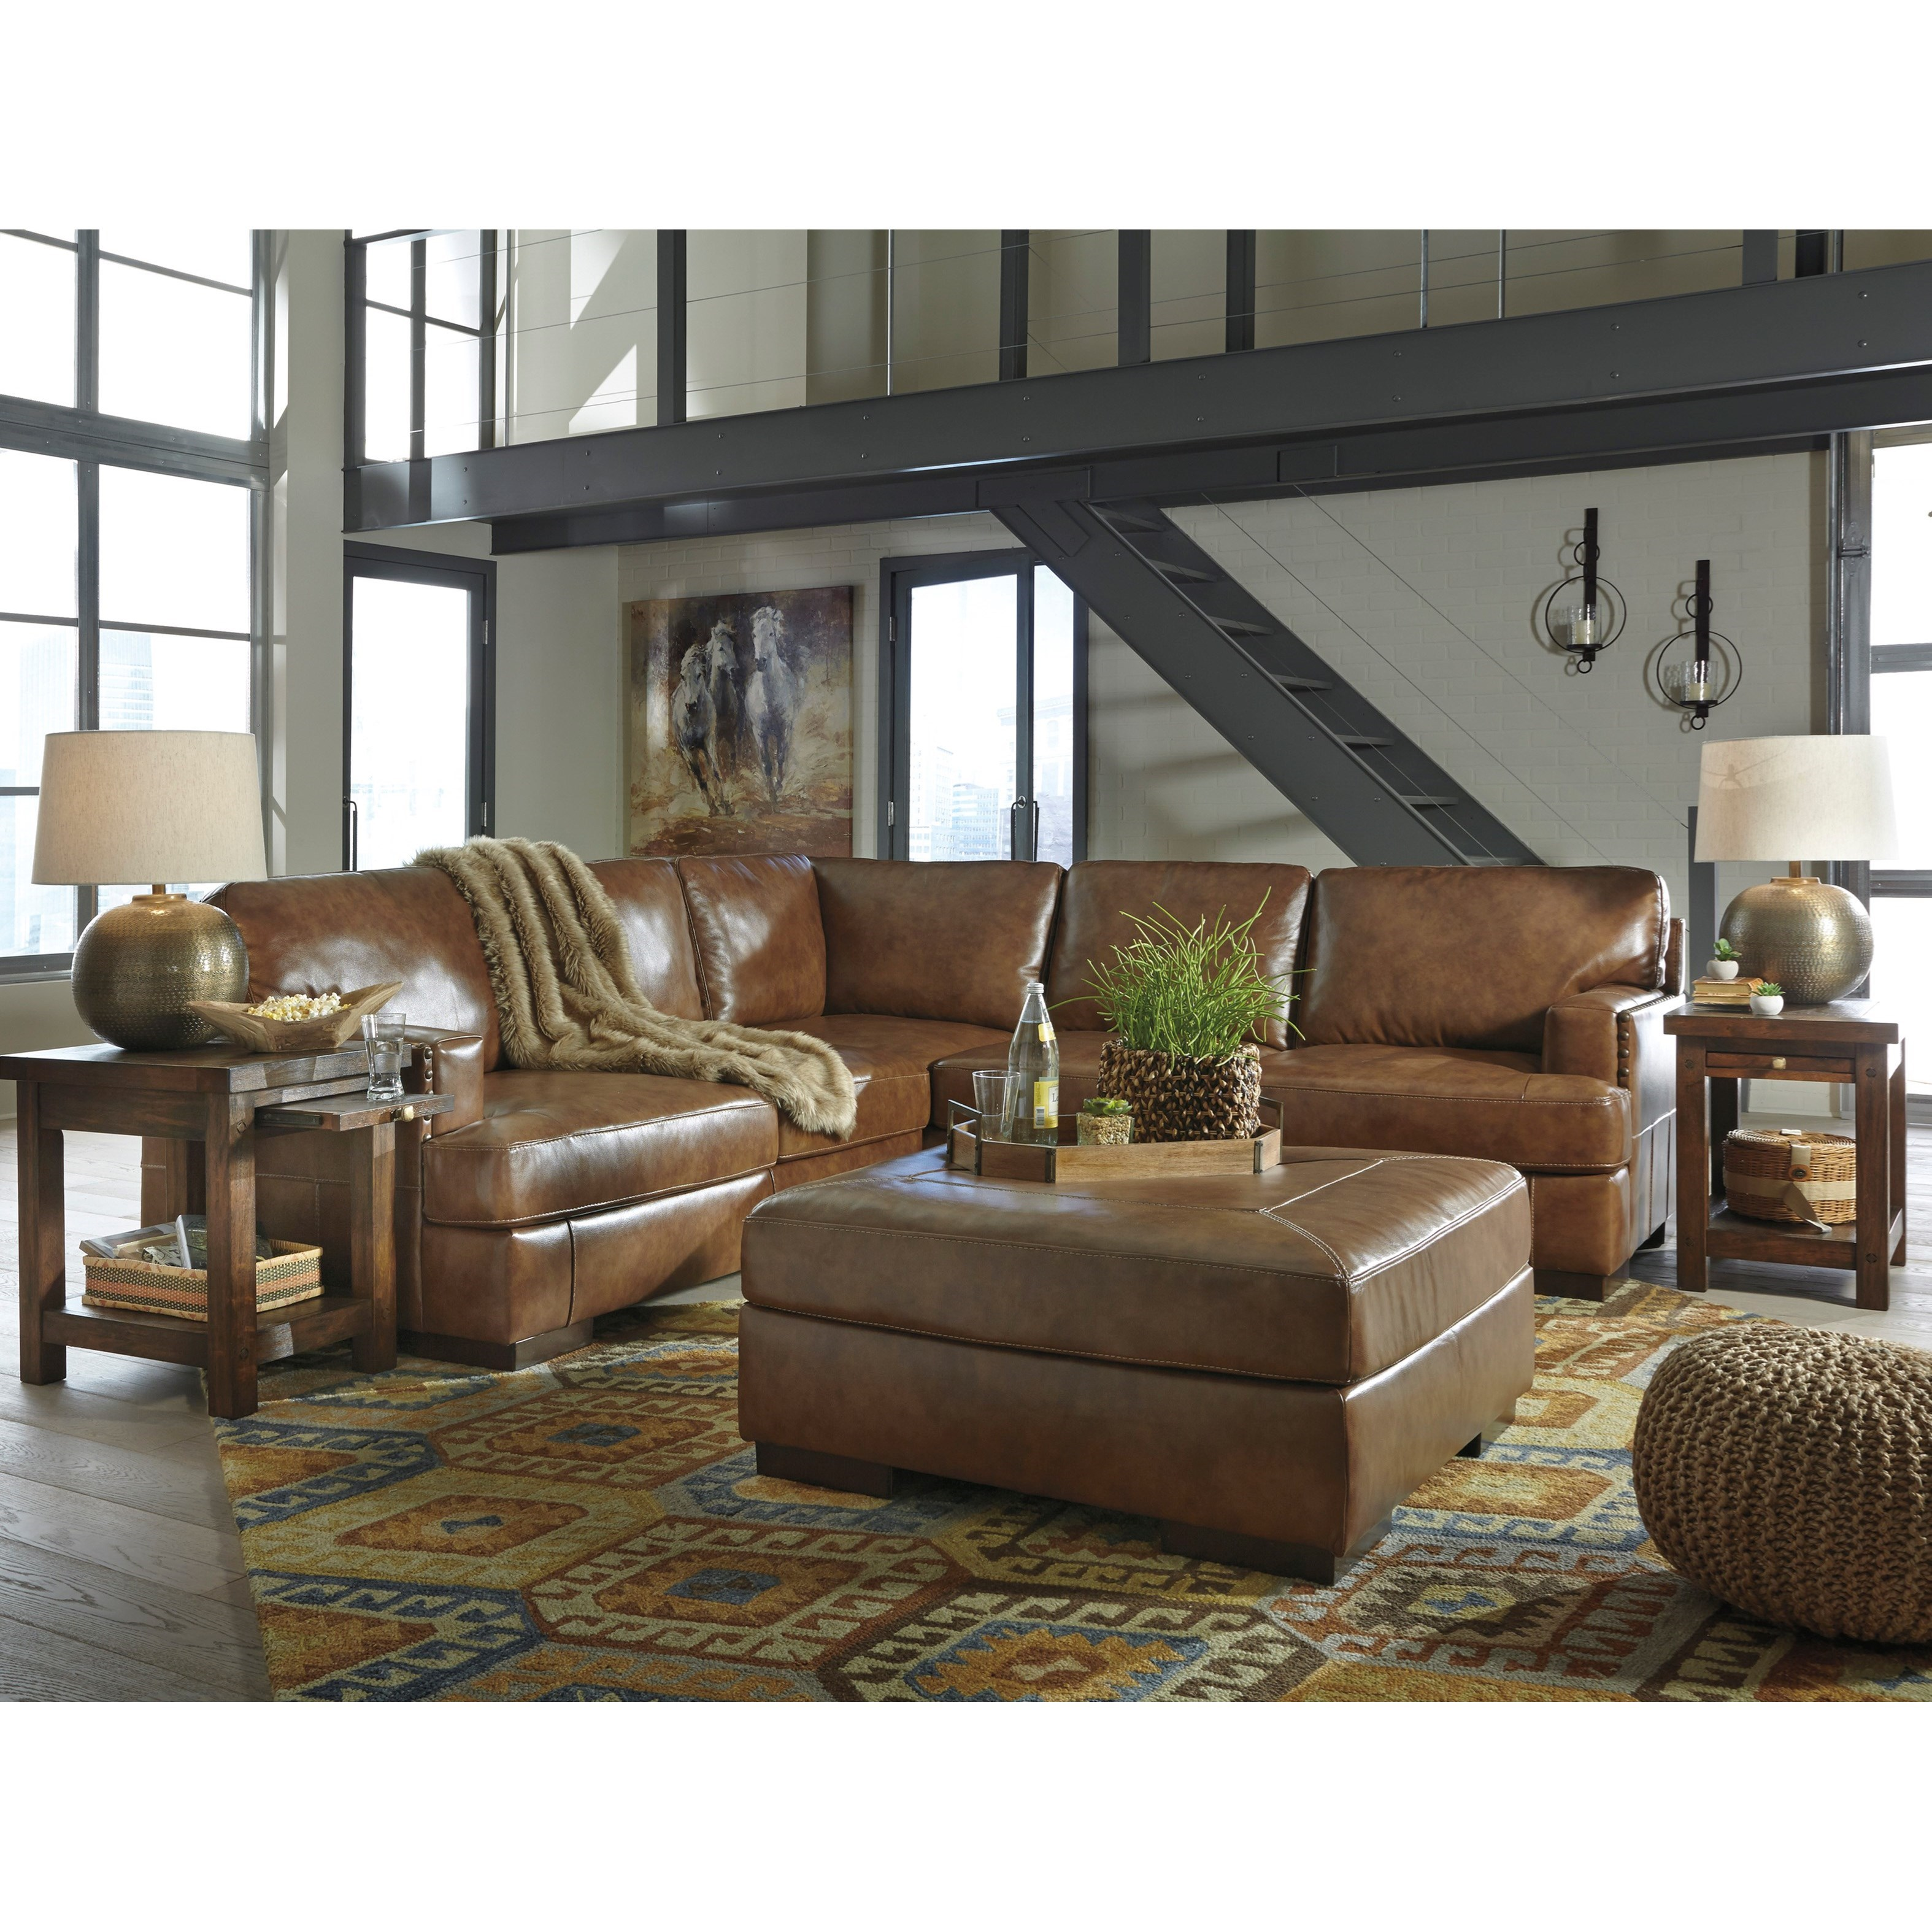 Signature Design by Ashley Vincenzo Stationary Living Room Group - Item Number: 30401 Living Room Group 1